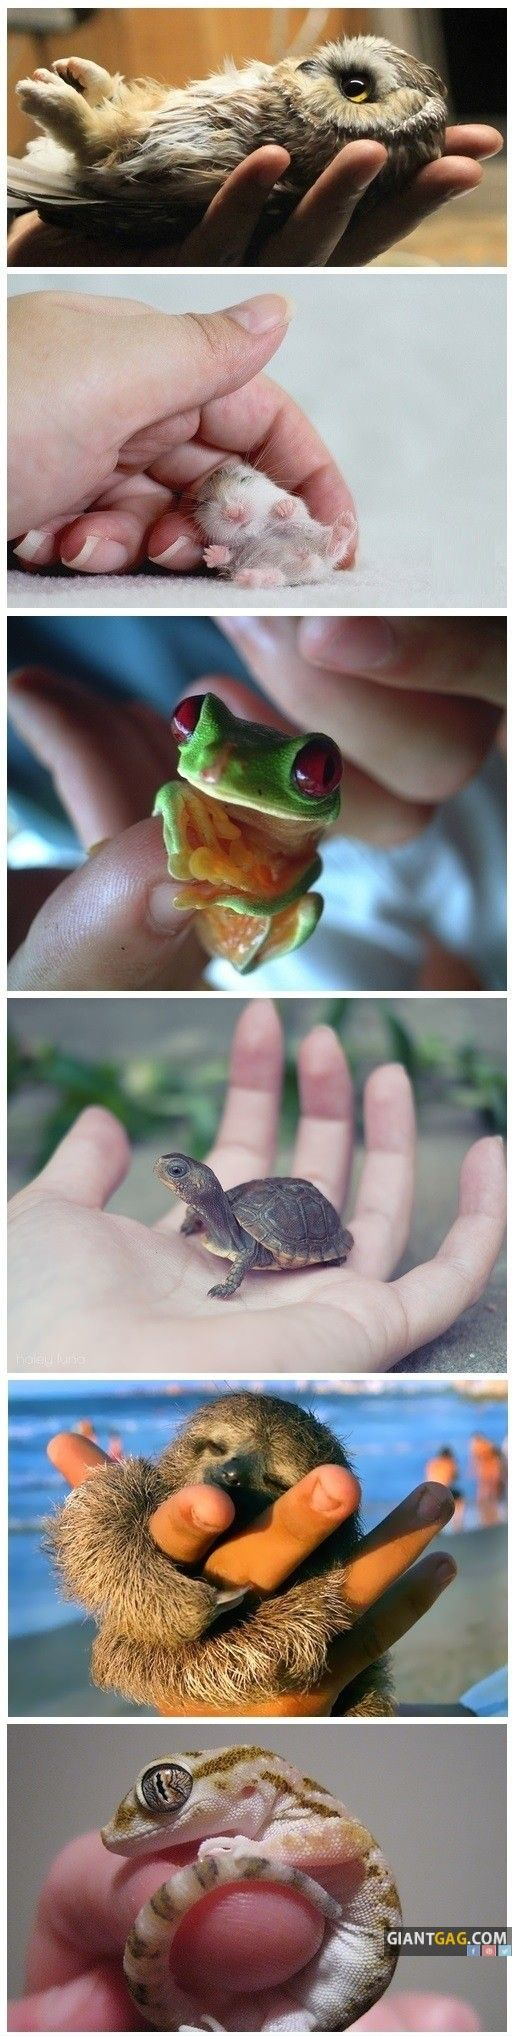 Pictures of the day, 101 images. Tiny Baby Animals (Compilation)